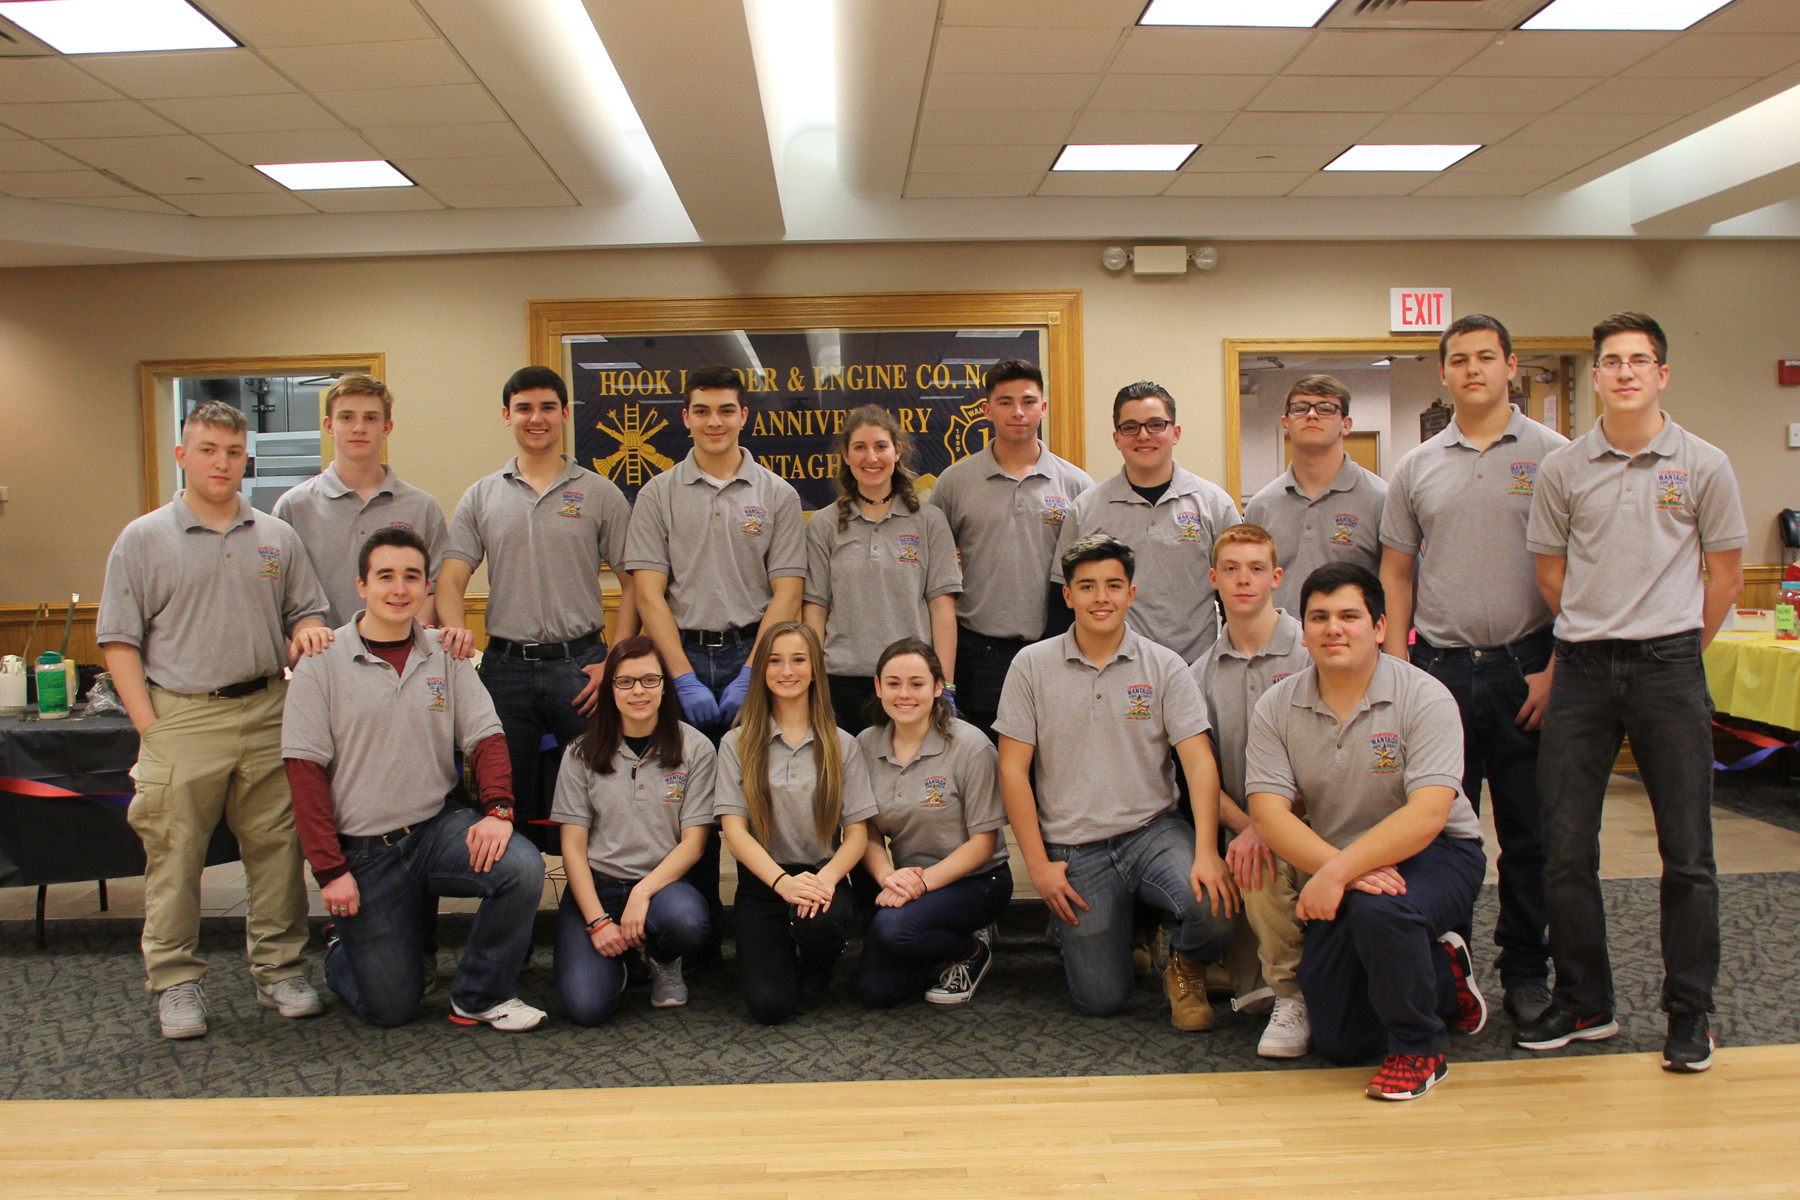 The teenaged members of Wantagh Fire Department Explorer Post 690 hosted a pasta dinner fundraiser for local folks on March 26.